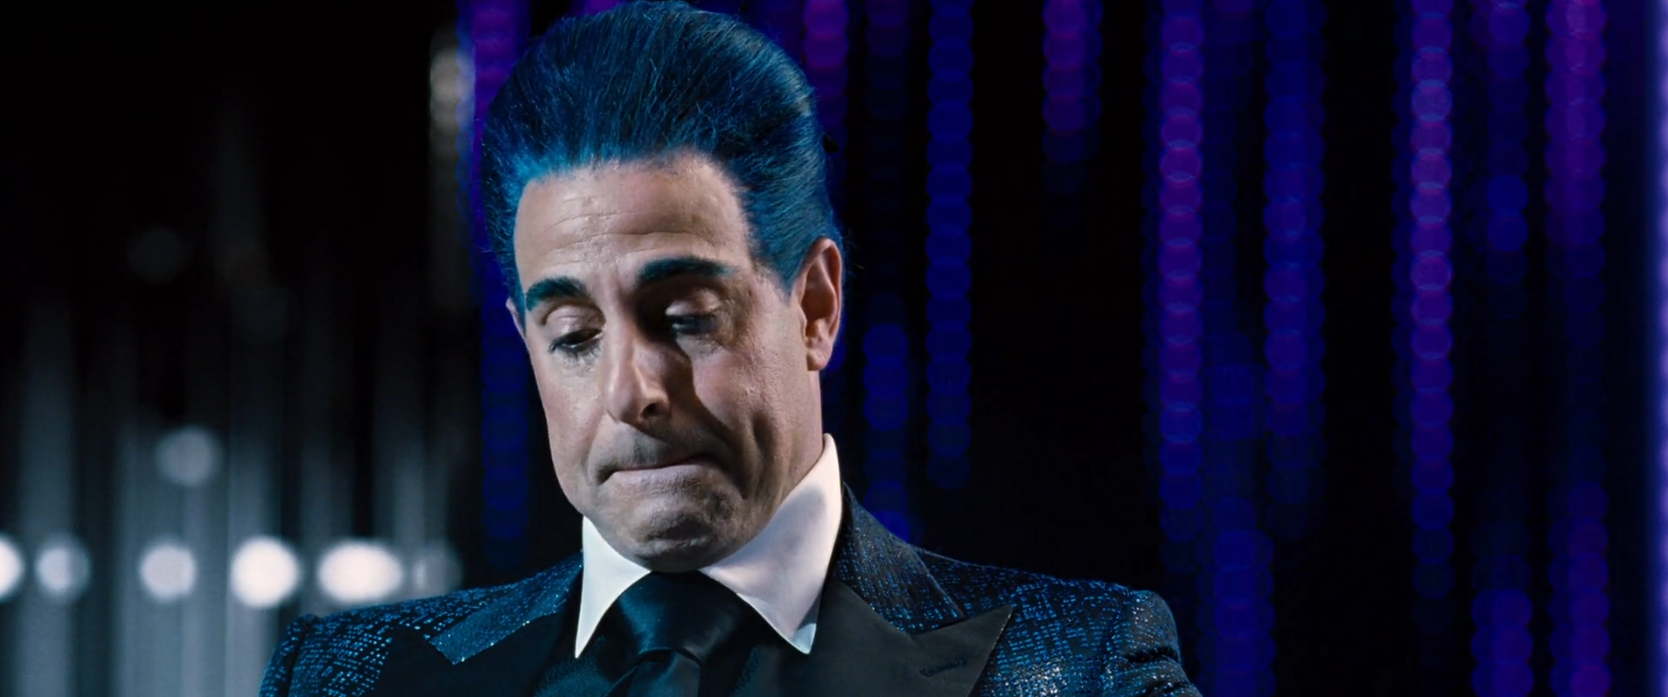 Stanley Tucci in the hunger games with awesome blue hair